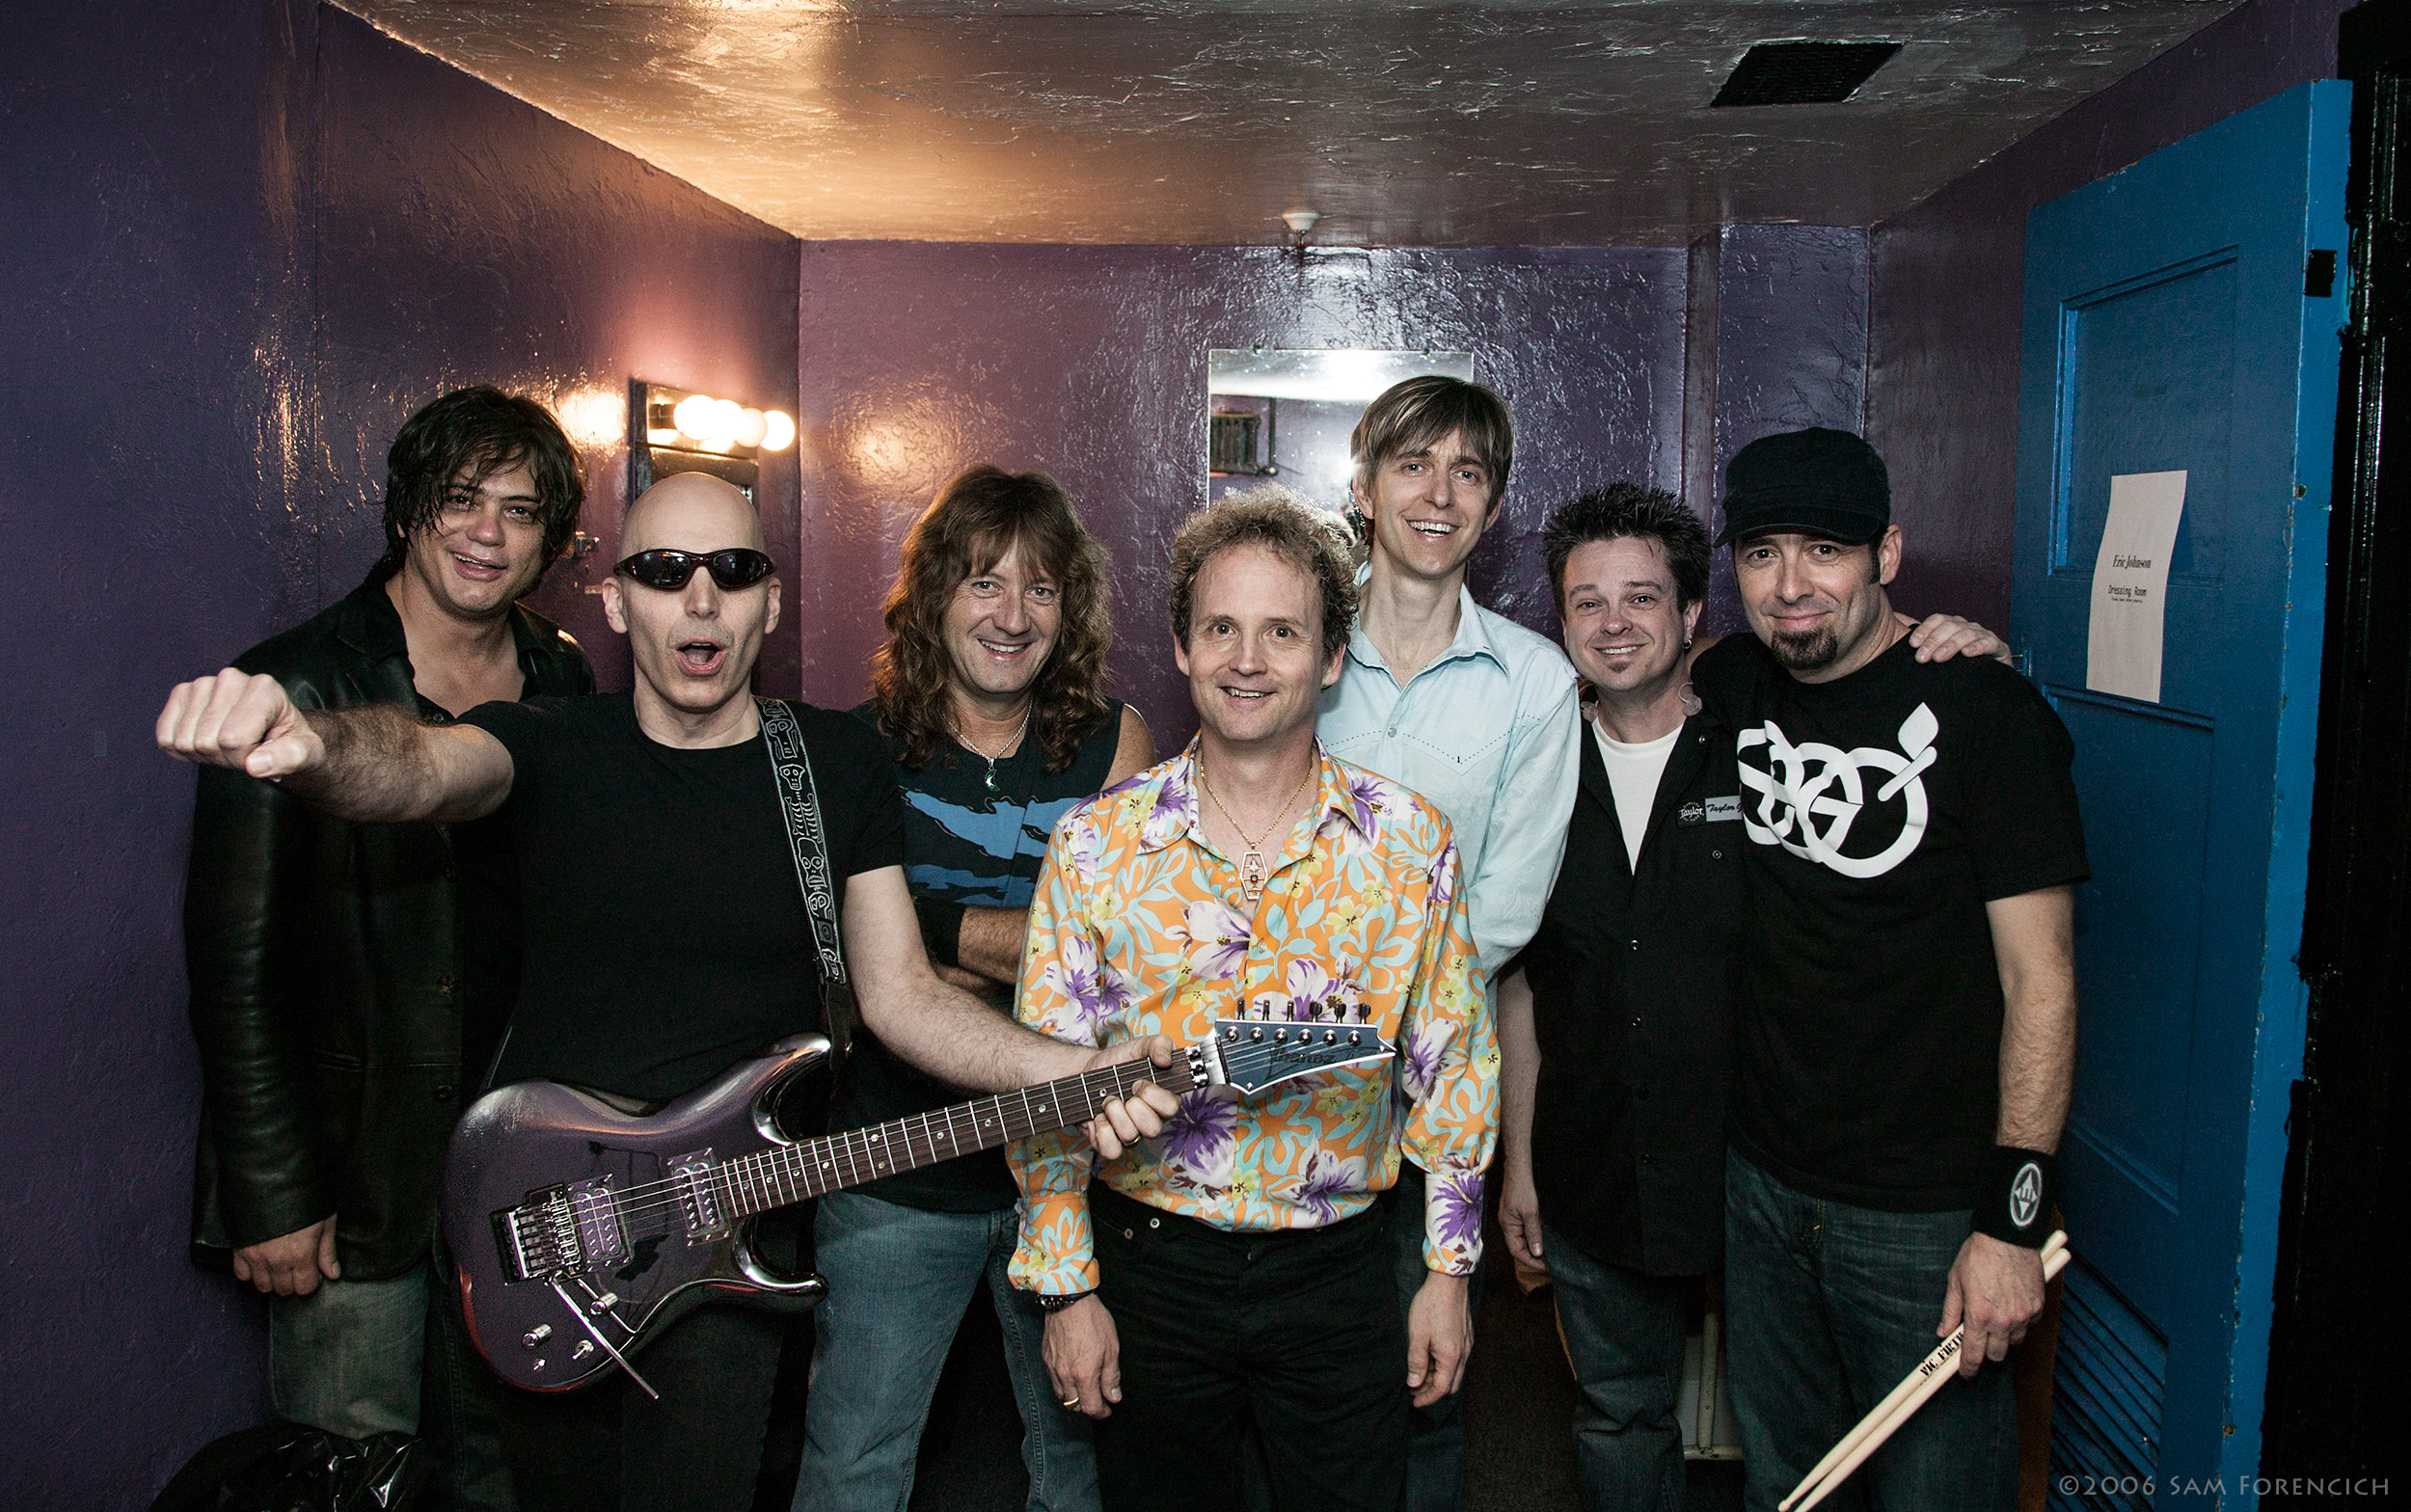 May 2006,San Francisco, California - The Joe Satriani and Eric Johnson bands gather for an end of tour photo backstage at the Warfield Theater - 2006 Super Colossal Tour ©2006 Sam Forencich